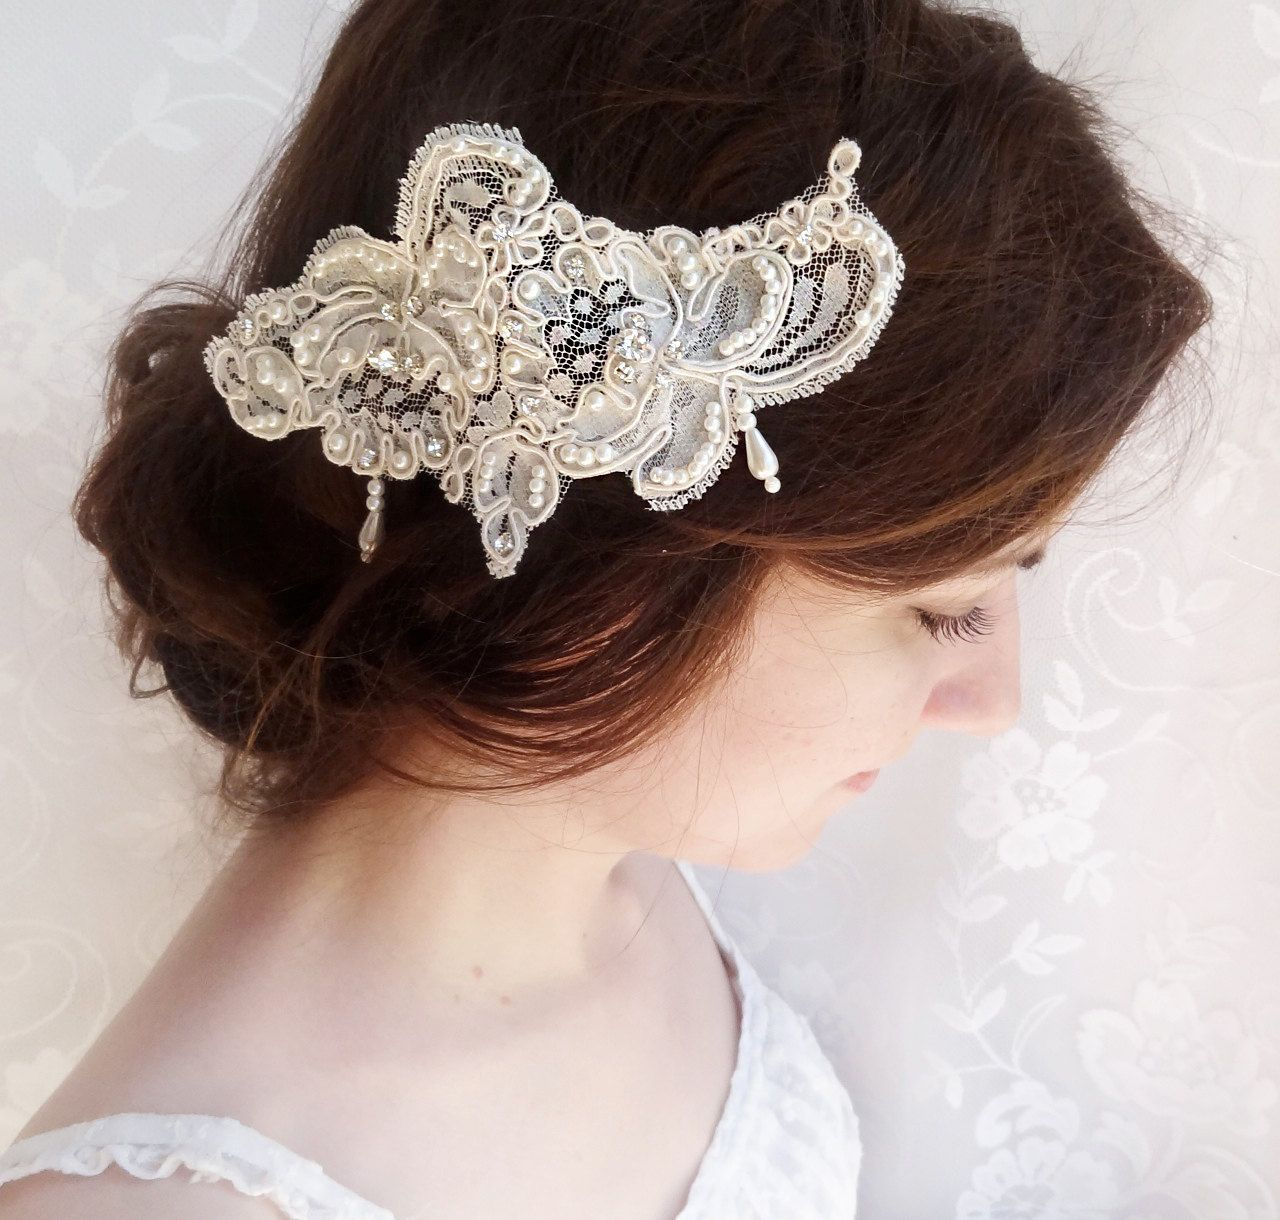 Lace Bridal Hair Accessories Rhinestone By Thehoneycomb On Etsy 8000